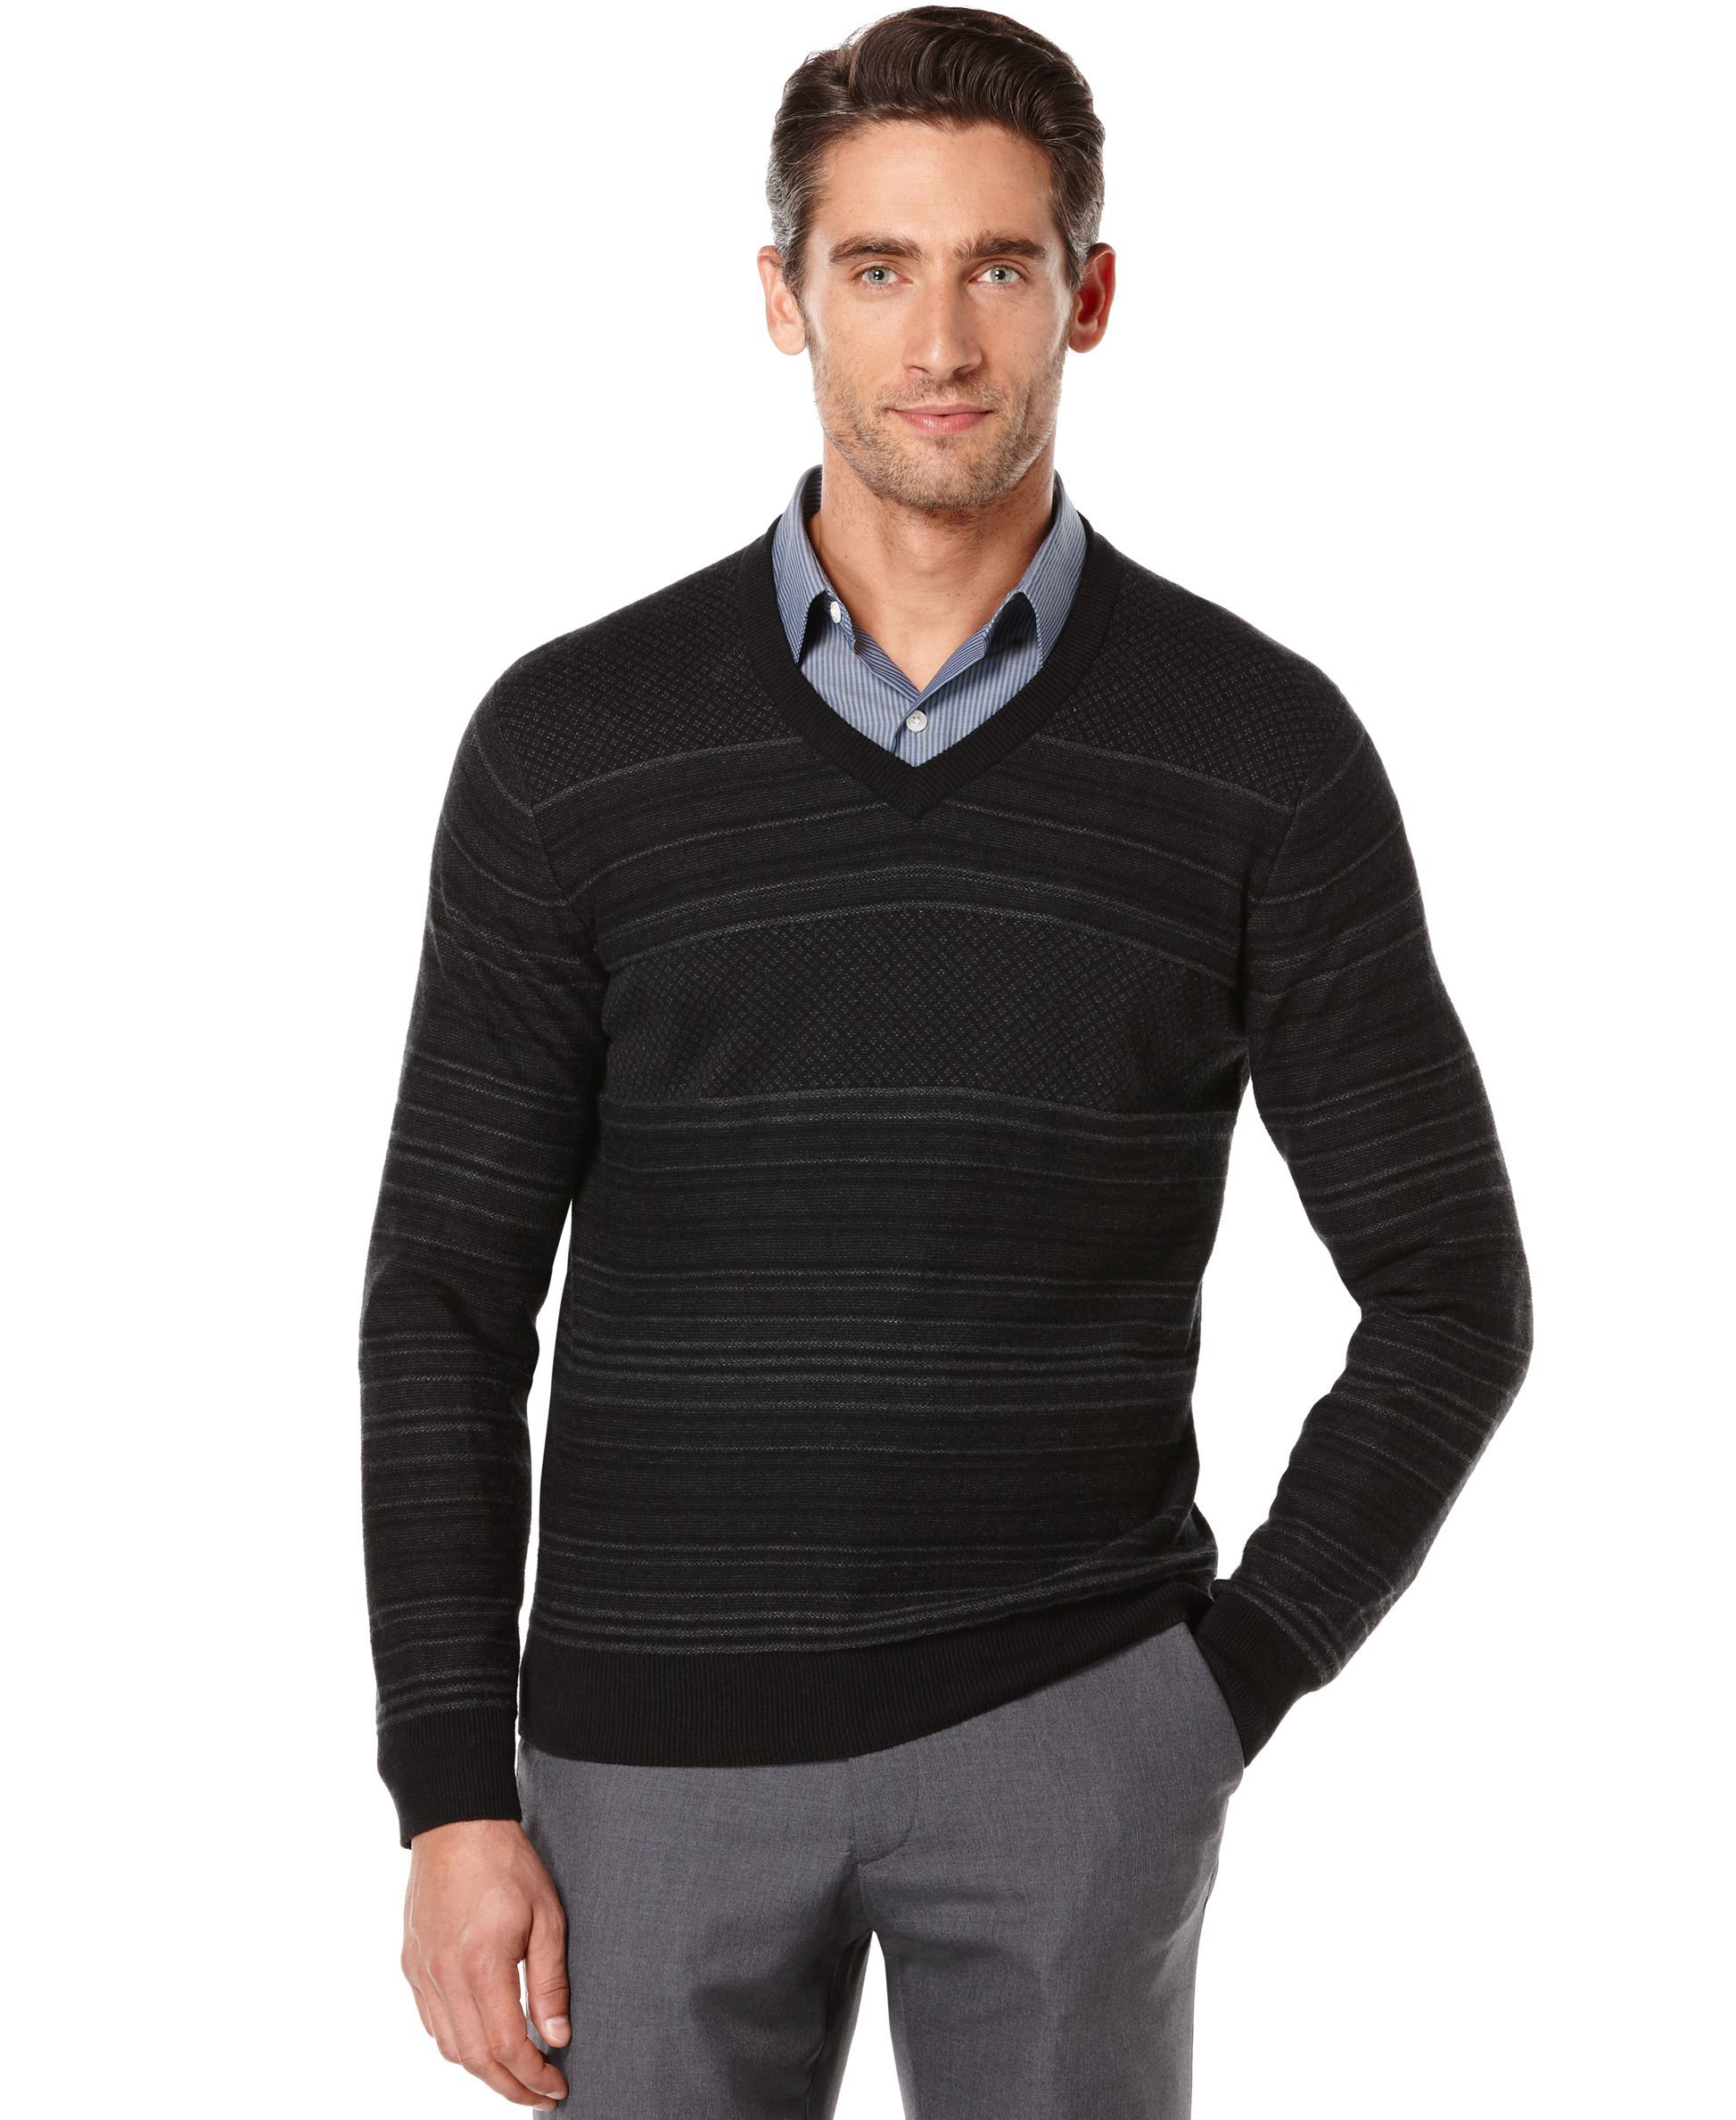 e818d7ecd Perry Ellis Big and Tall Jacquard V-Neck Sweater